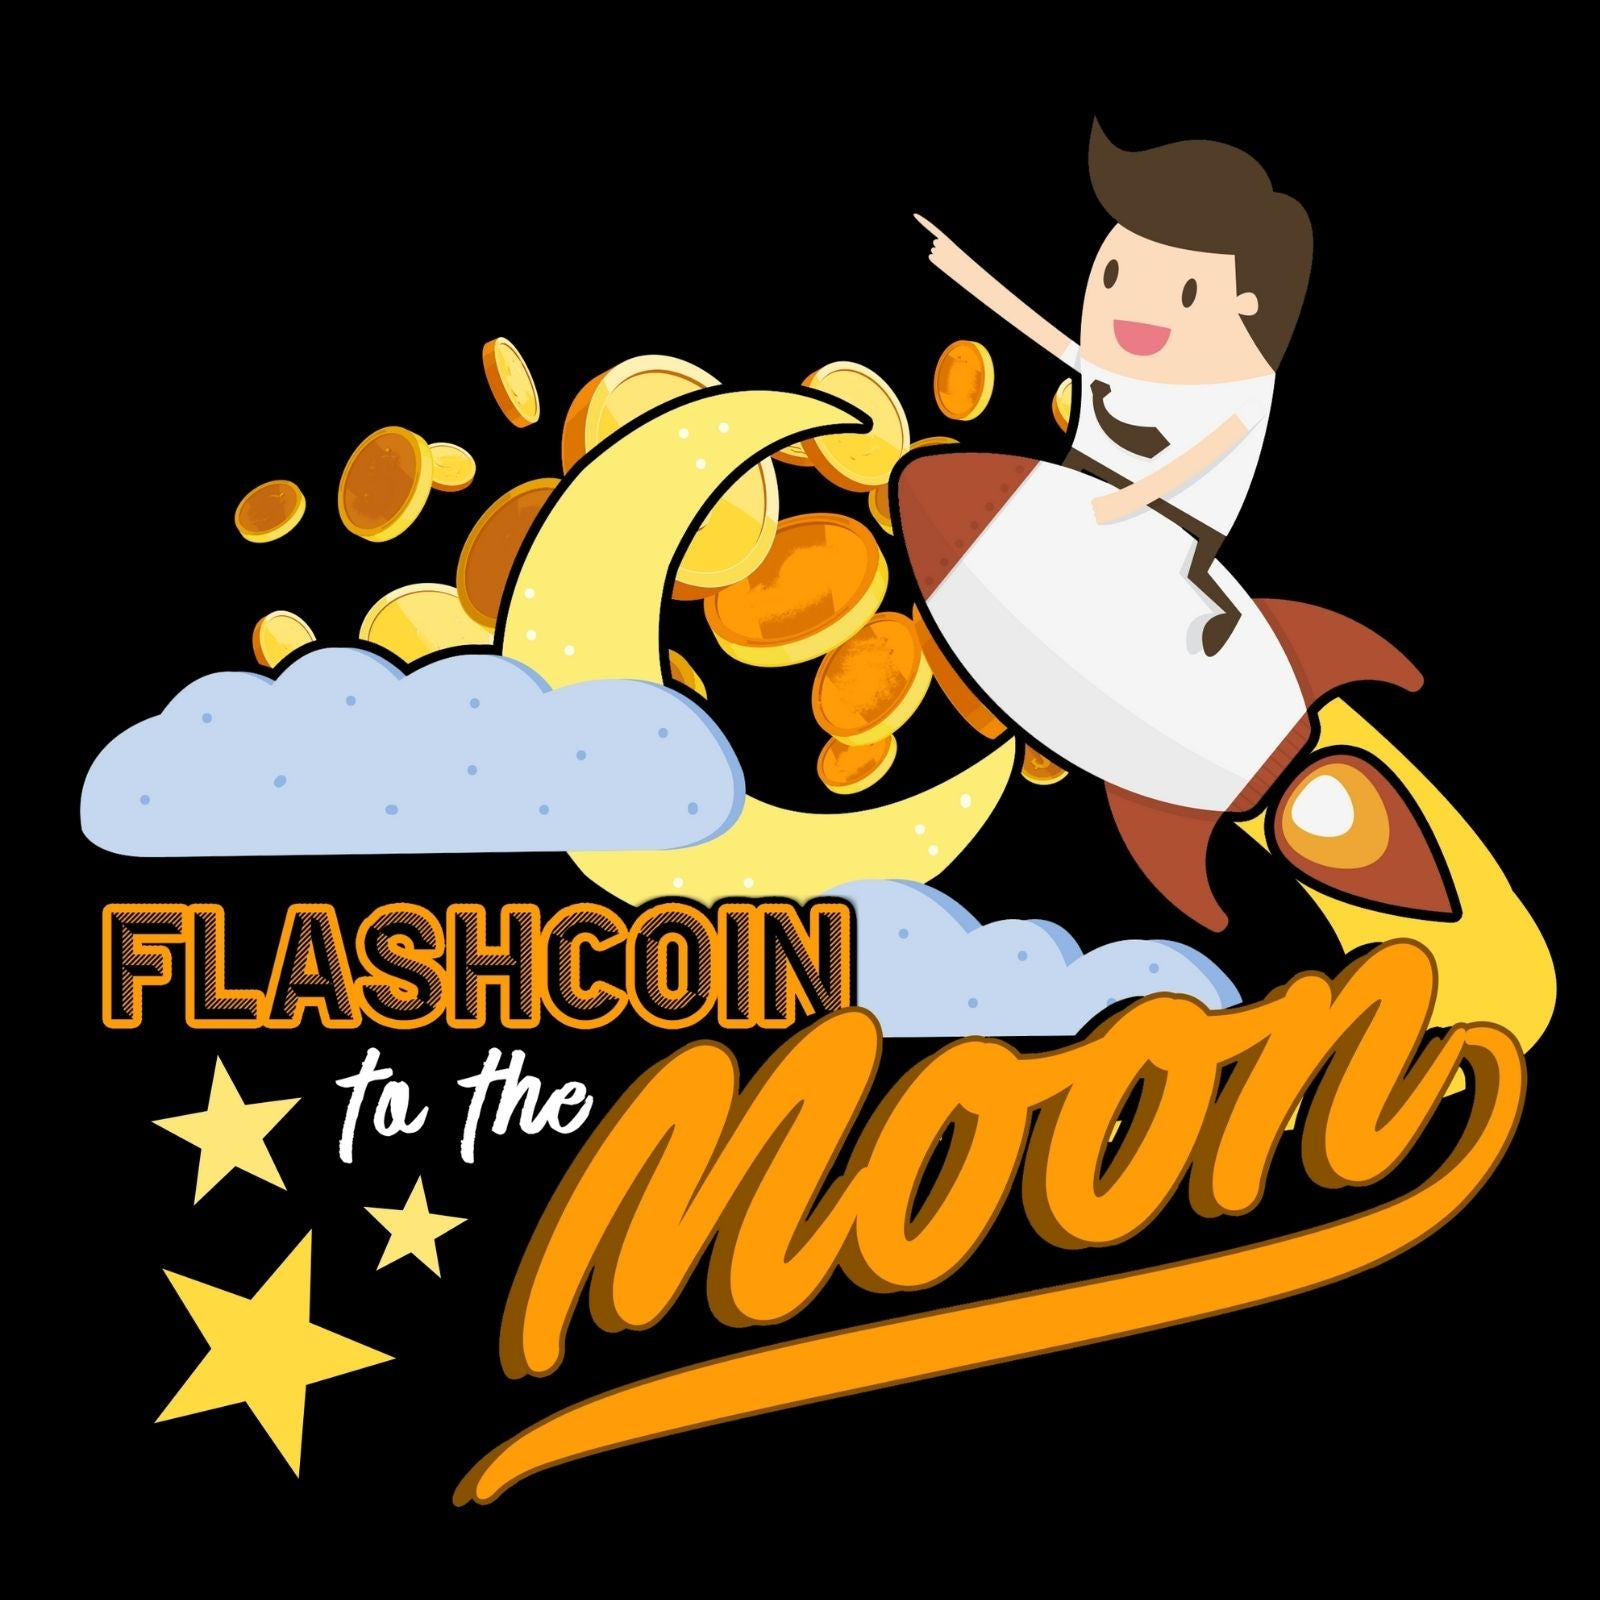 Flashcoin To The Moon 1 - Bastard Graphics